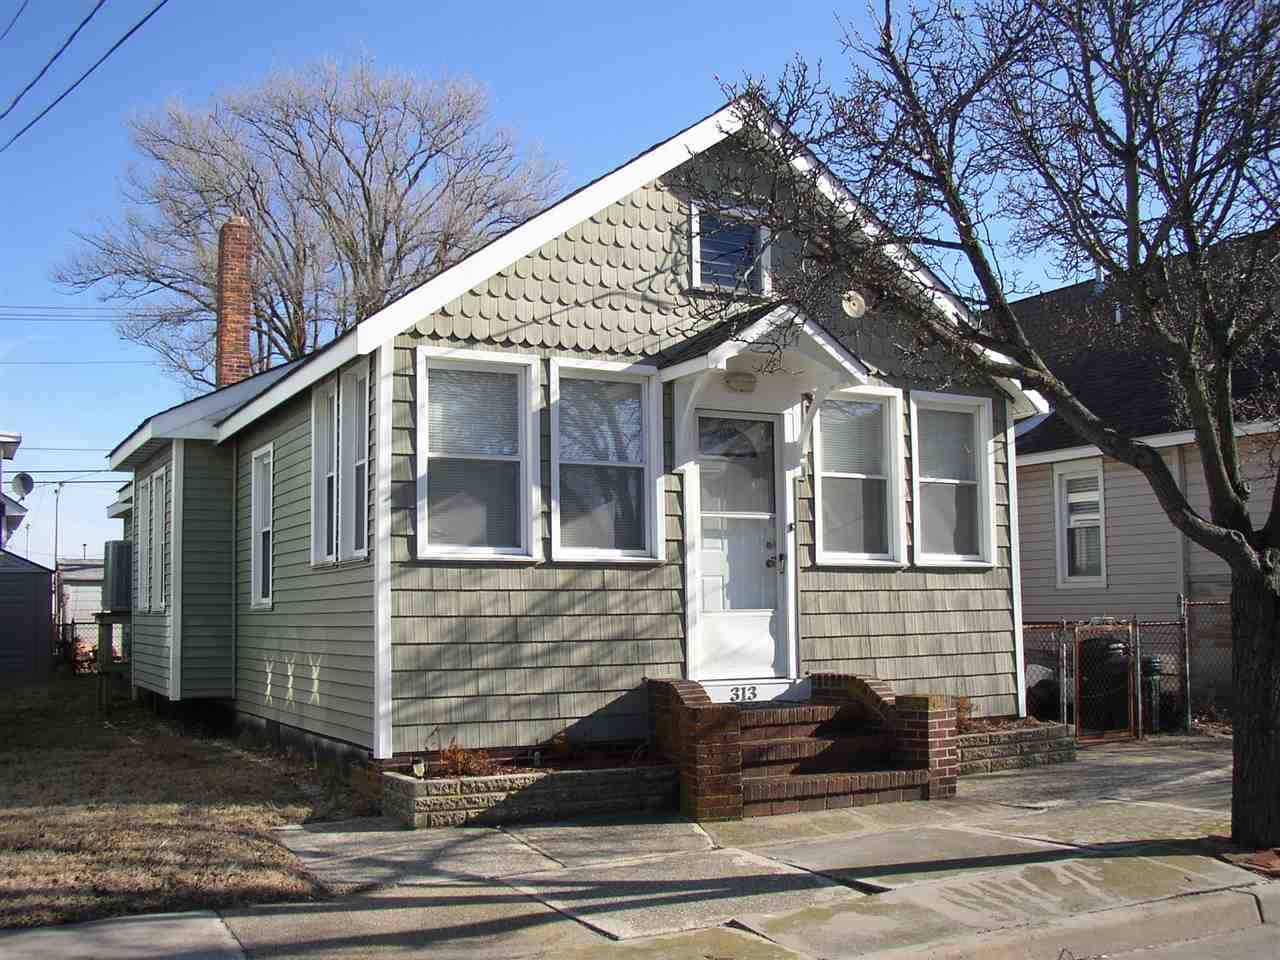 313 Juniper, Wildwood